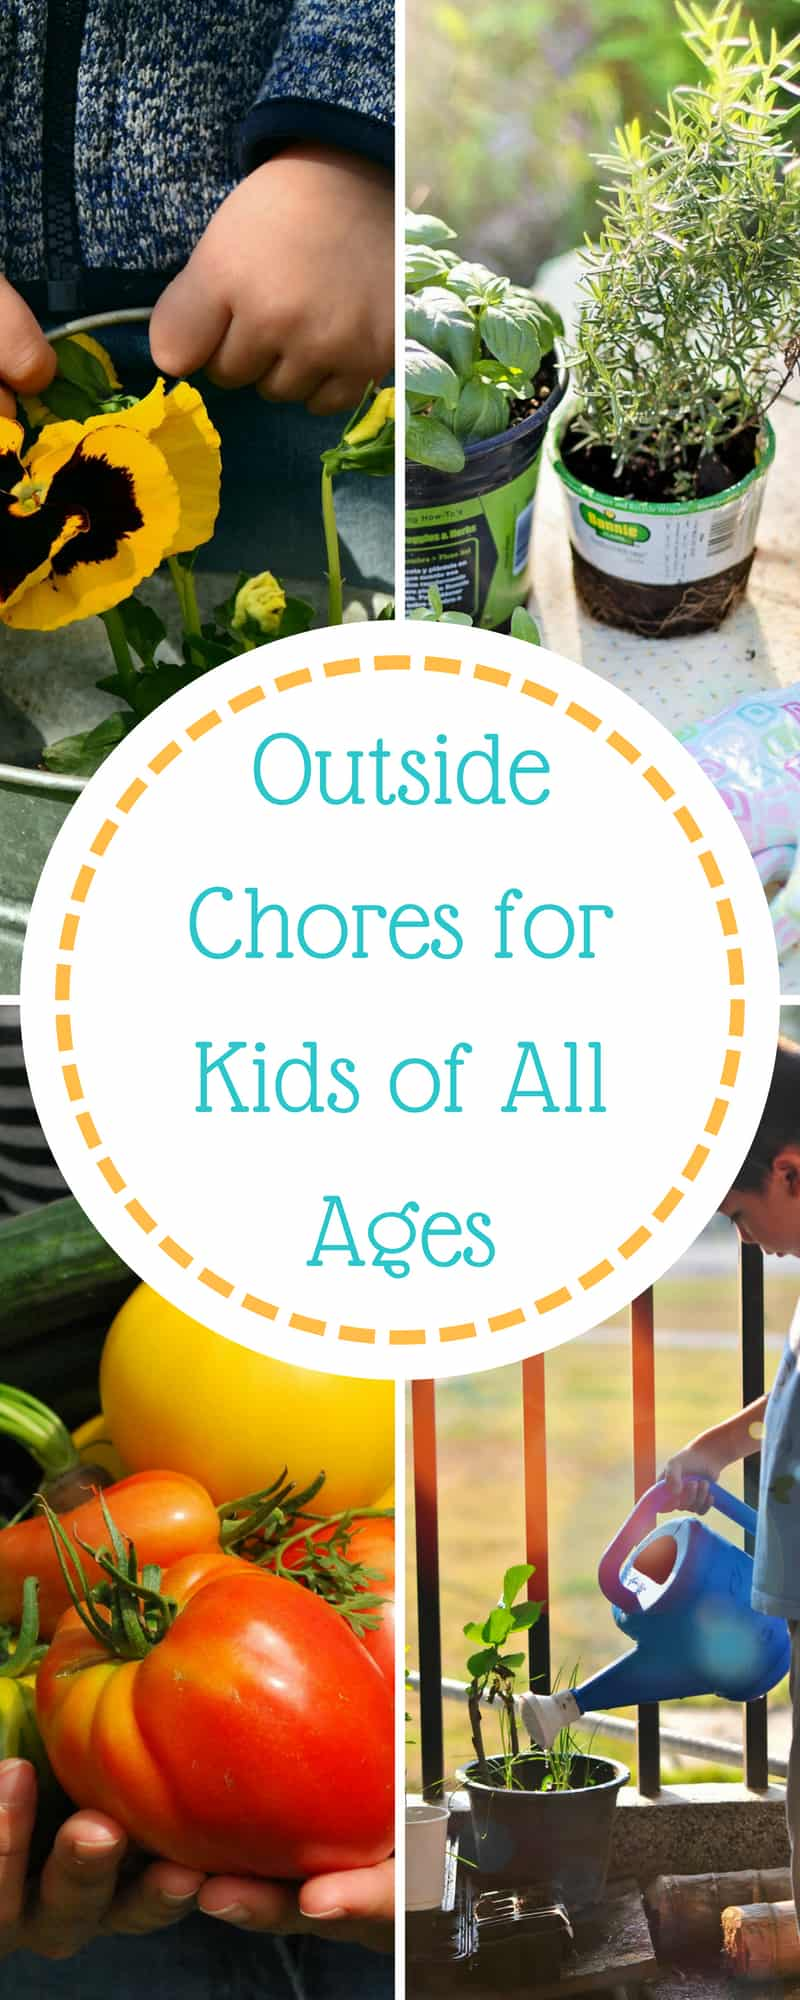 Outside Chores for Kids